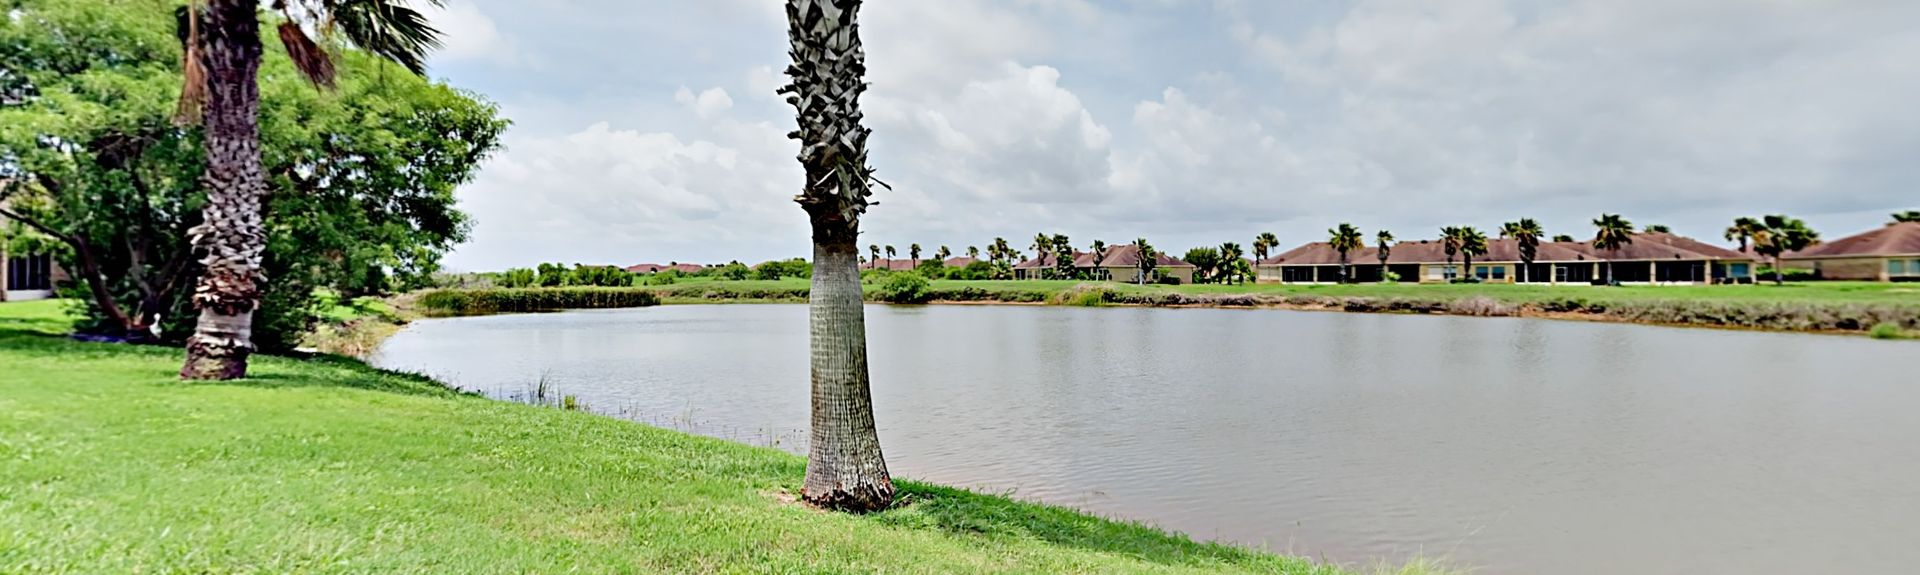 South Padre Island Golf Club, Laguna Vista, TX, USA